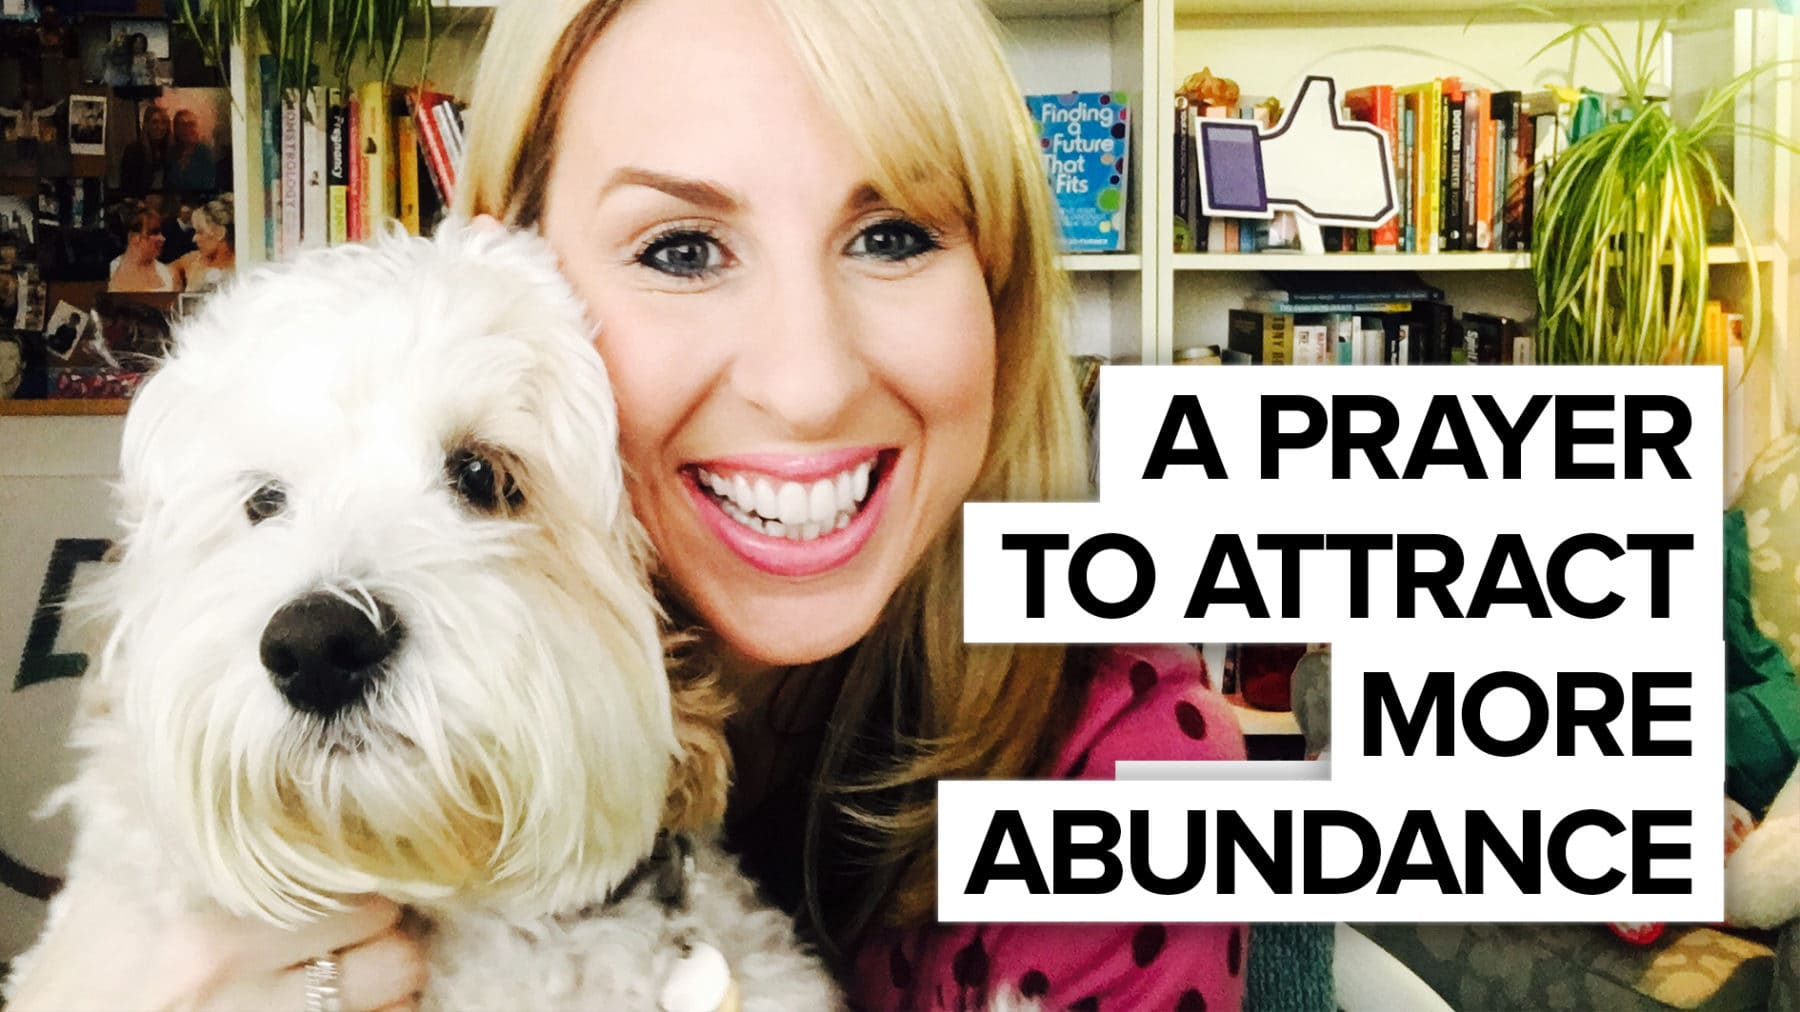 A prayer to attract more abundance